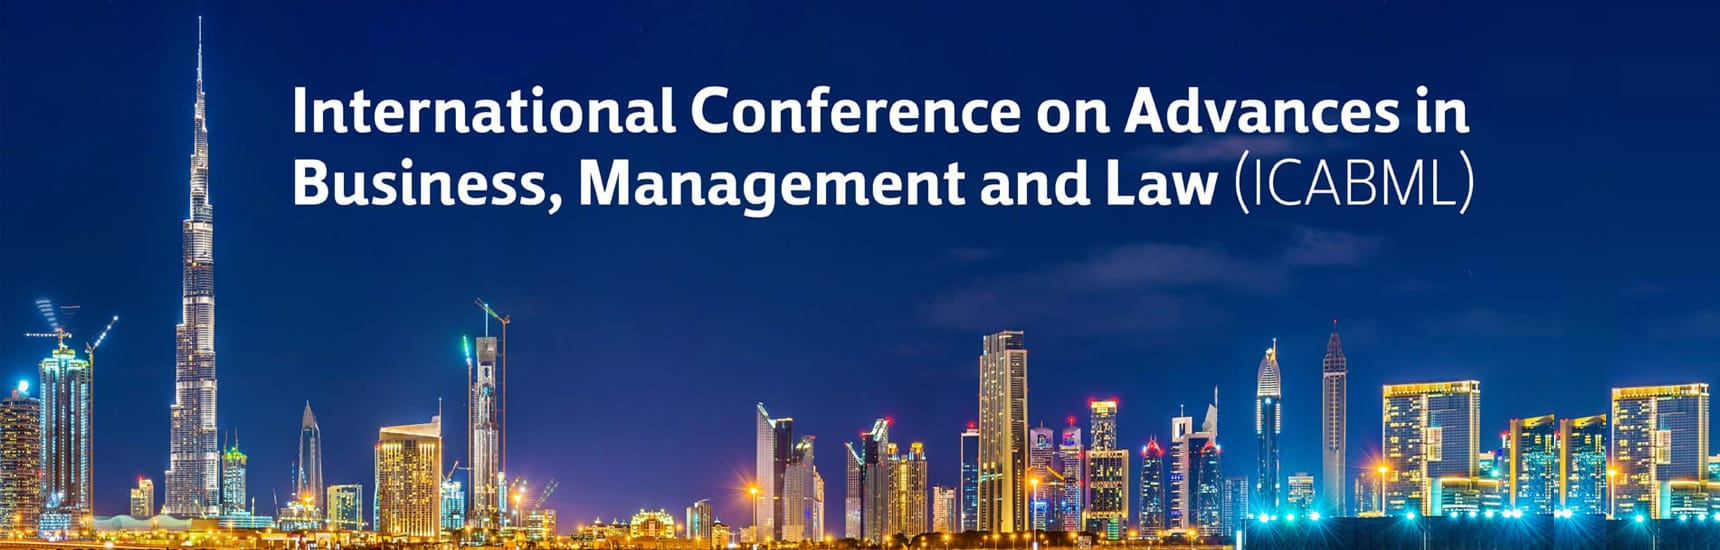 International Conference on Advances in Business Management and Law